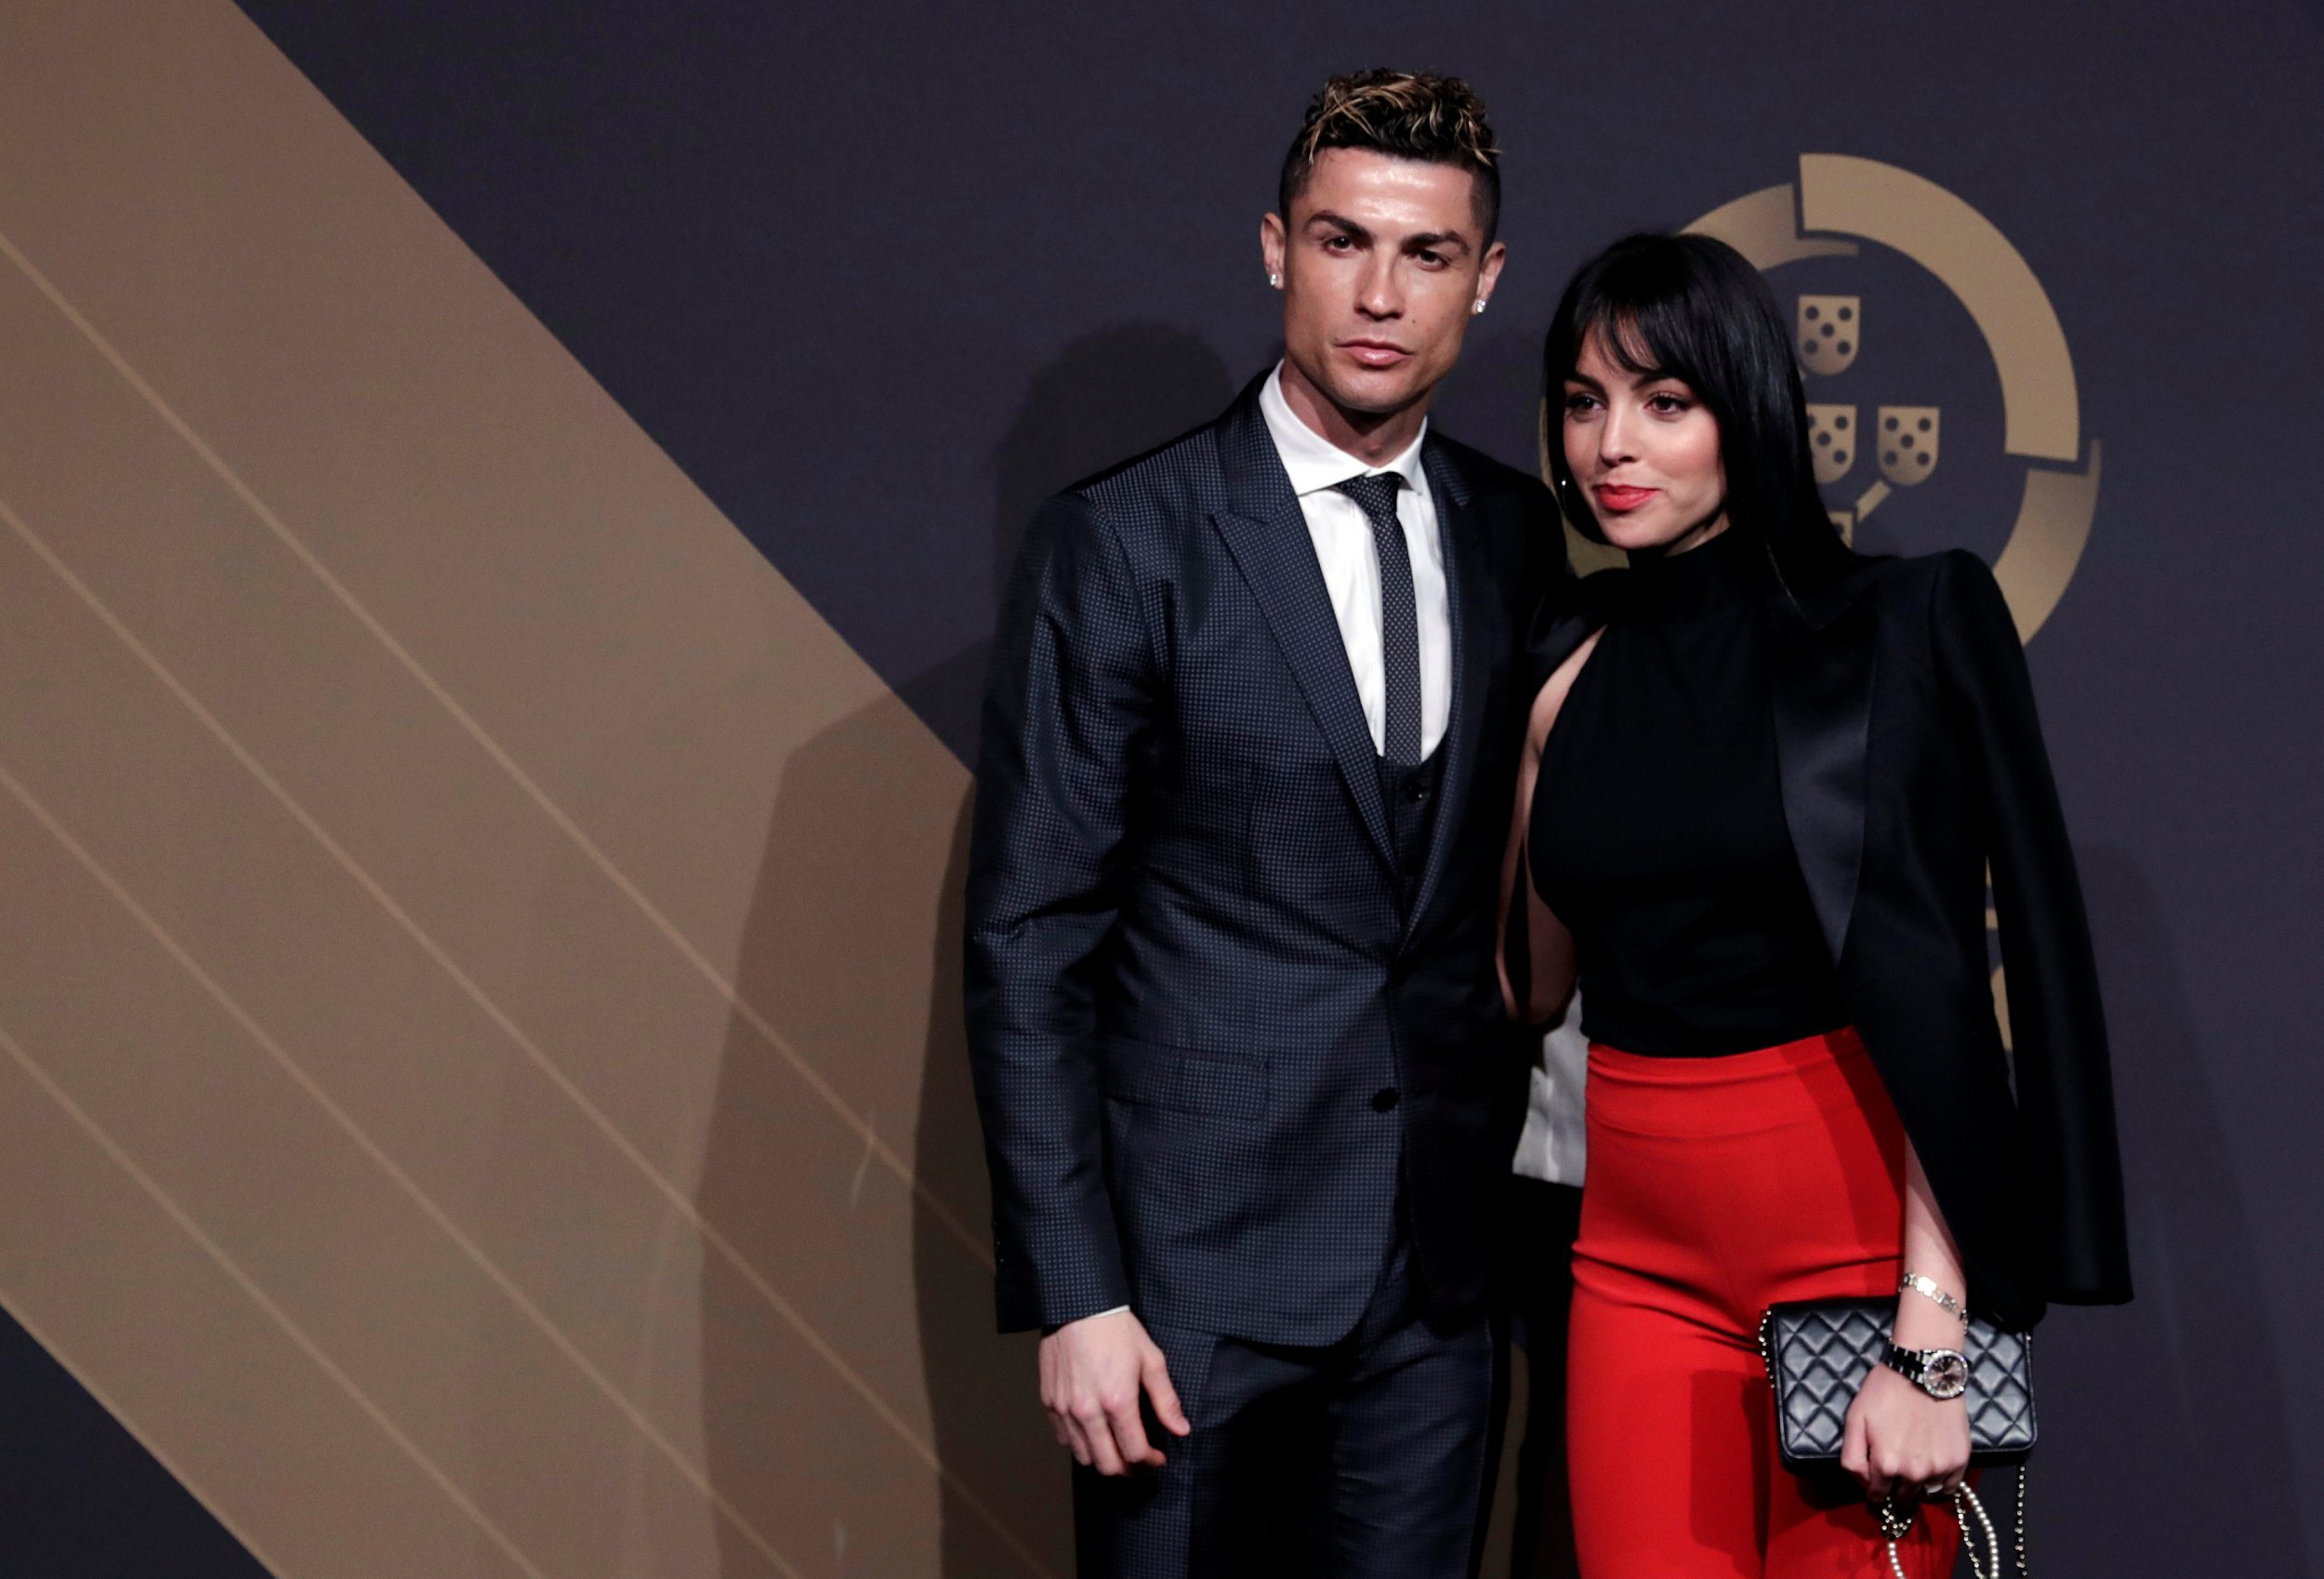 Portuguese soccer player Cristiano Ronaldo and his girlfriend Georgina Rodriguez arrive at the Quina Awards ceremony in Lisbon, Portugal, March 19, 2018. REUTERS/Rafael Marchante